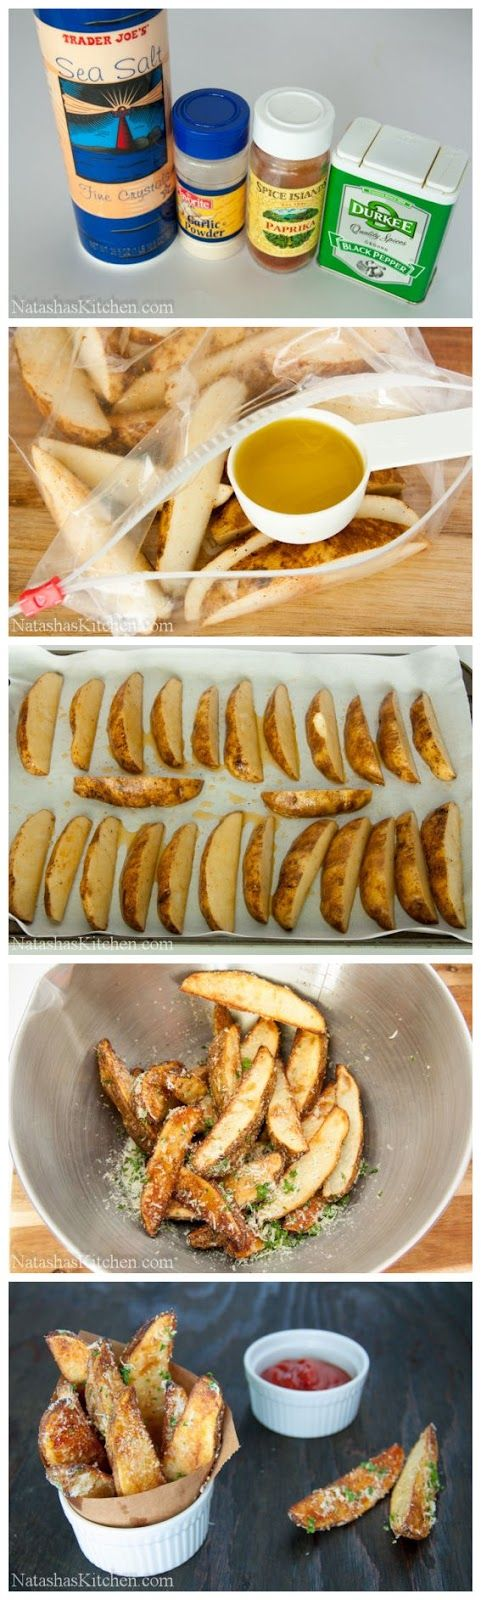 Oven Baked Potato Wedges - kiss recipe